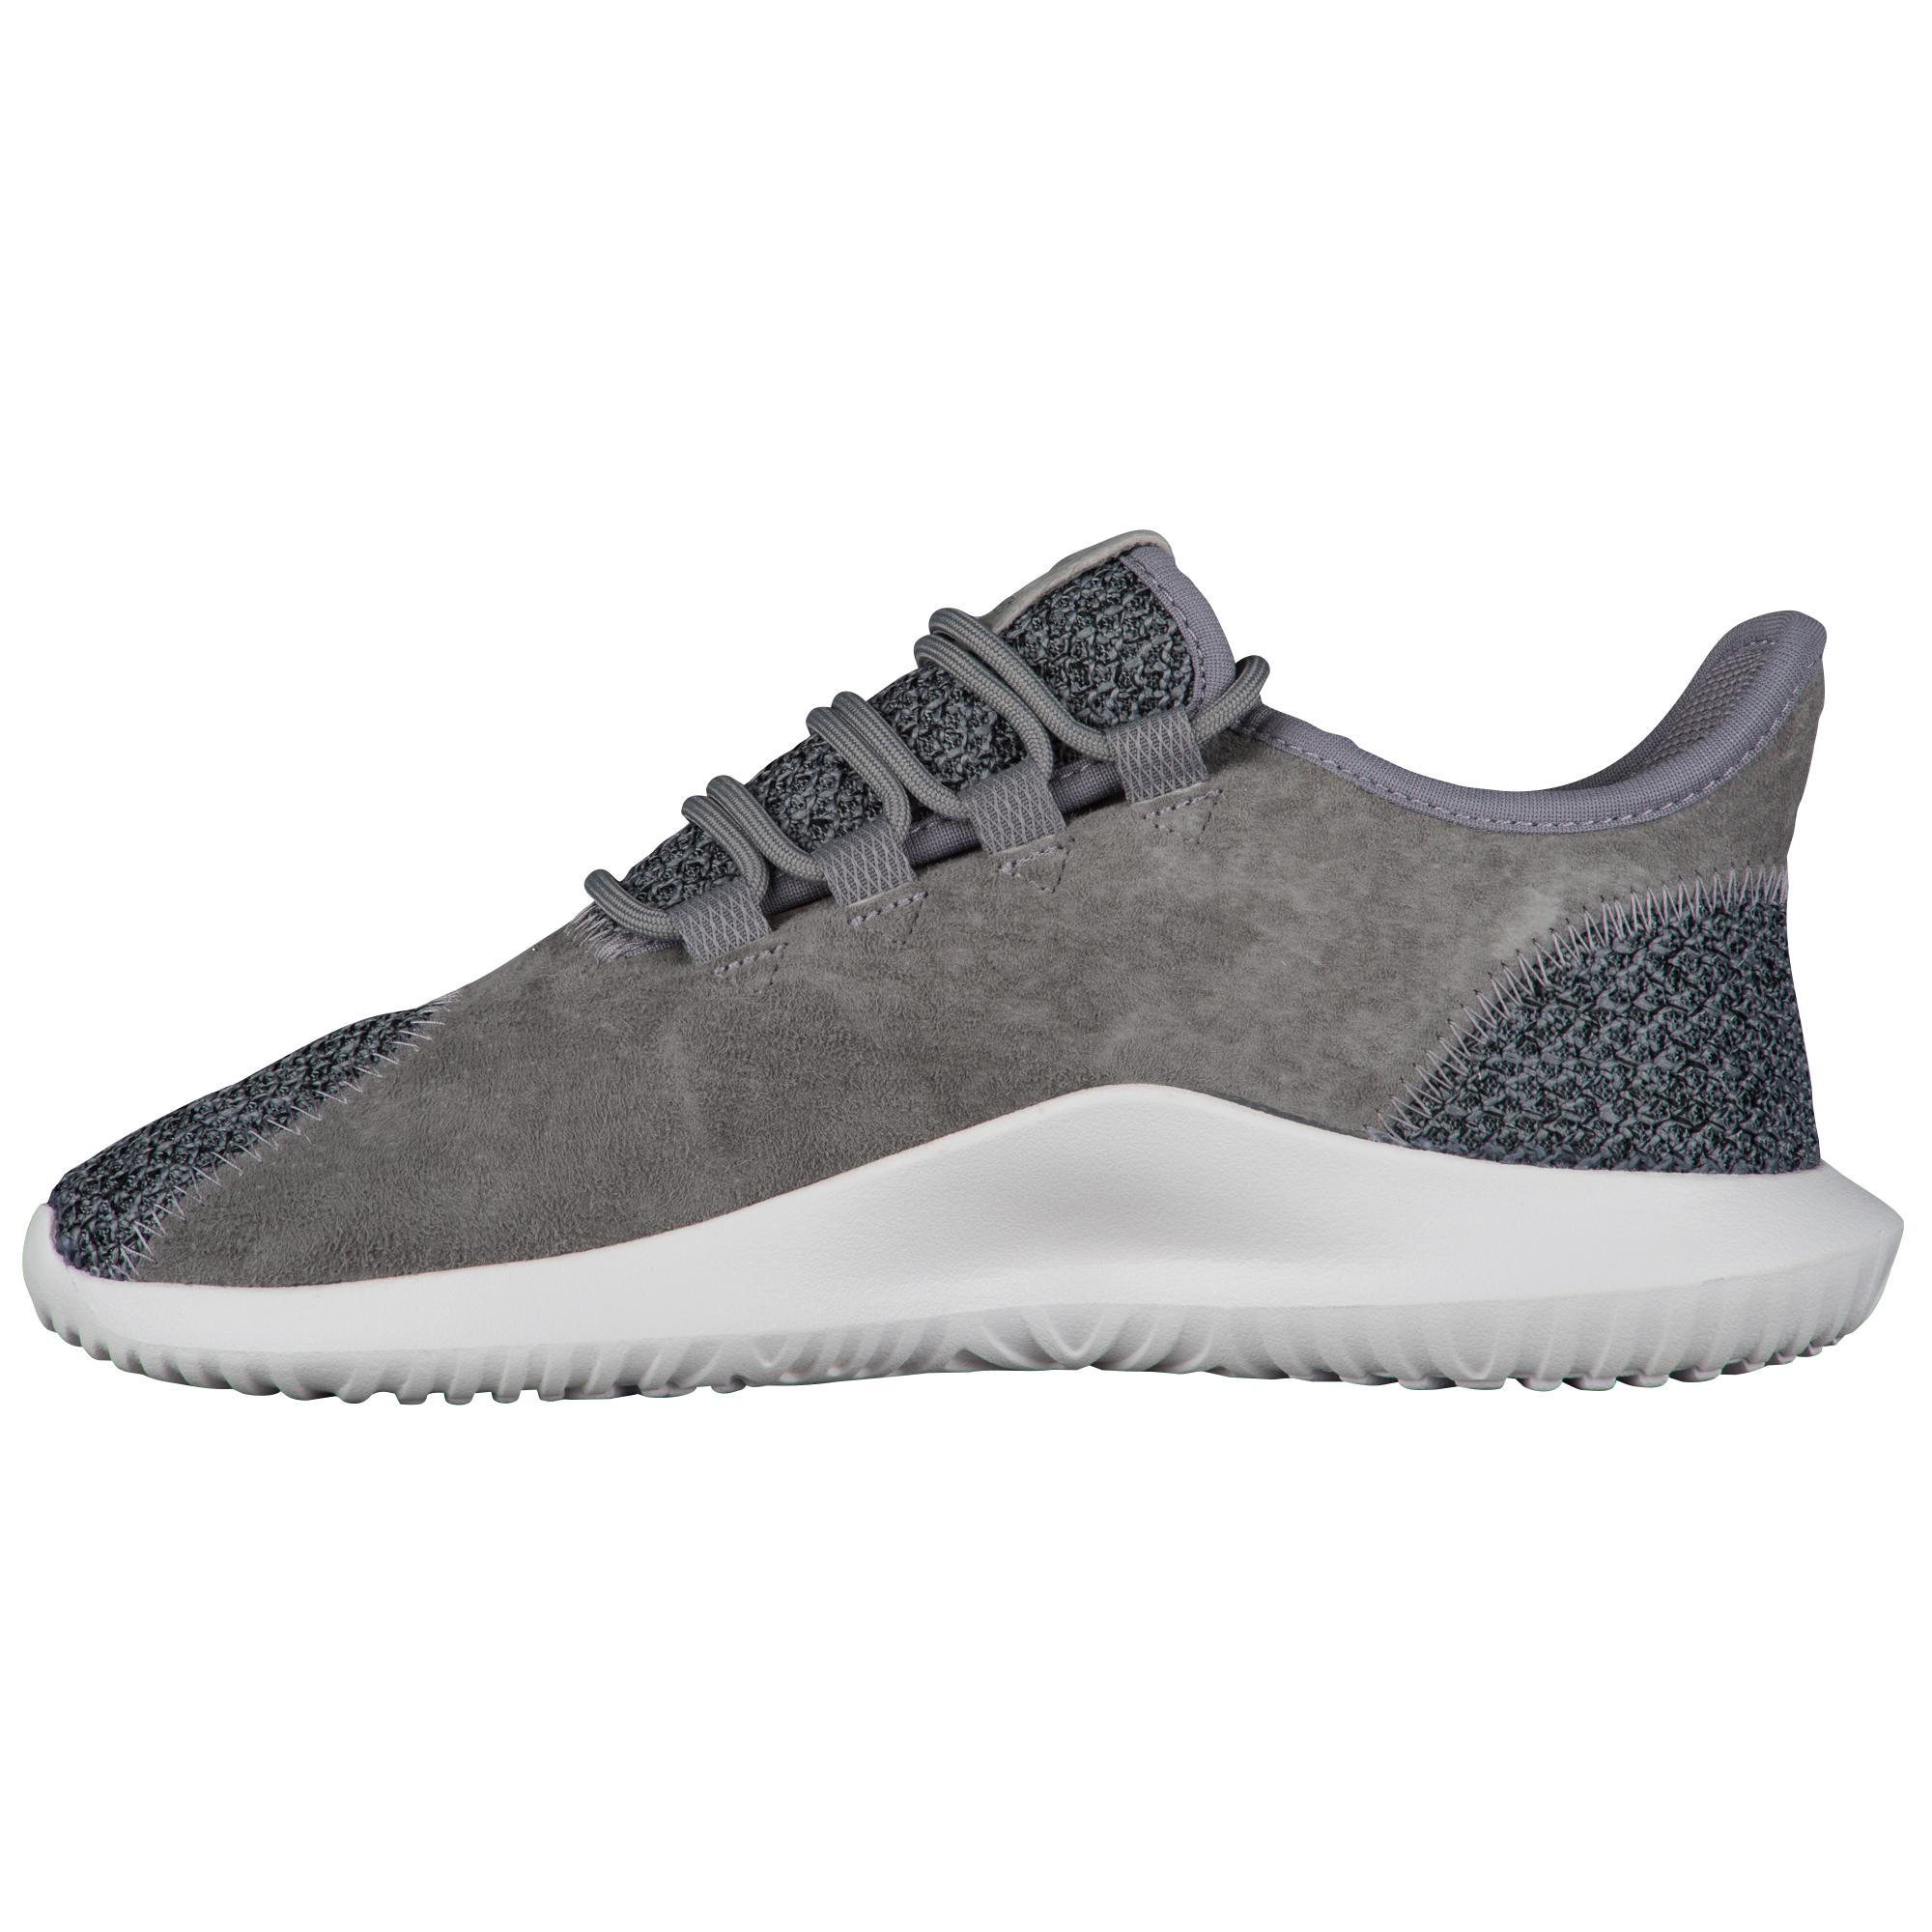 new product 7b006 d2c8a adidas Originals Tubular Shadow in Gray - Lyst